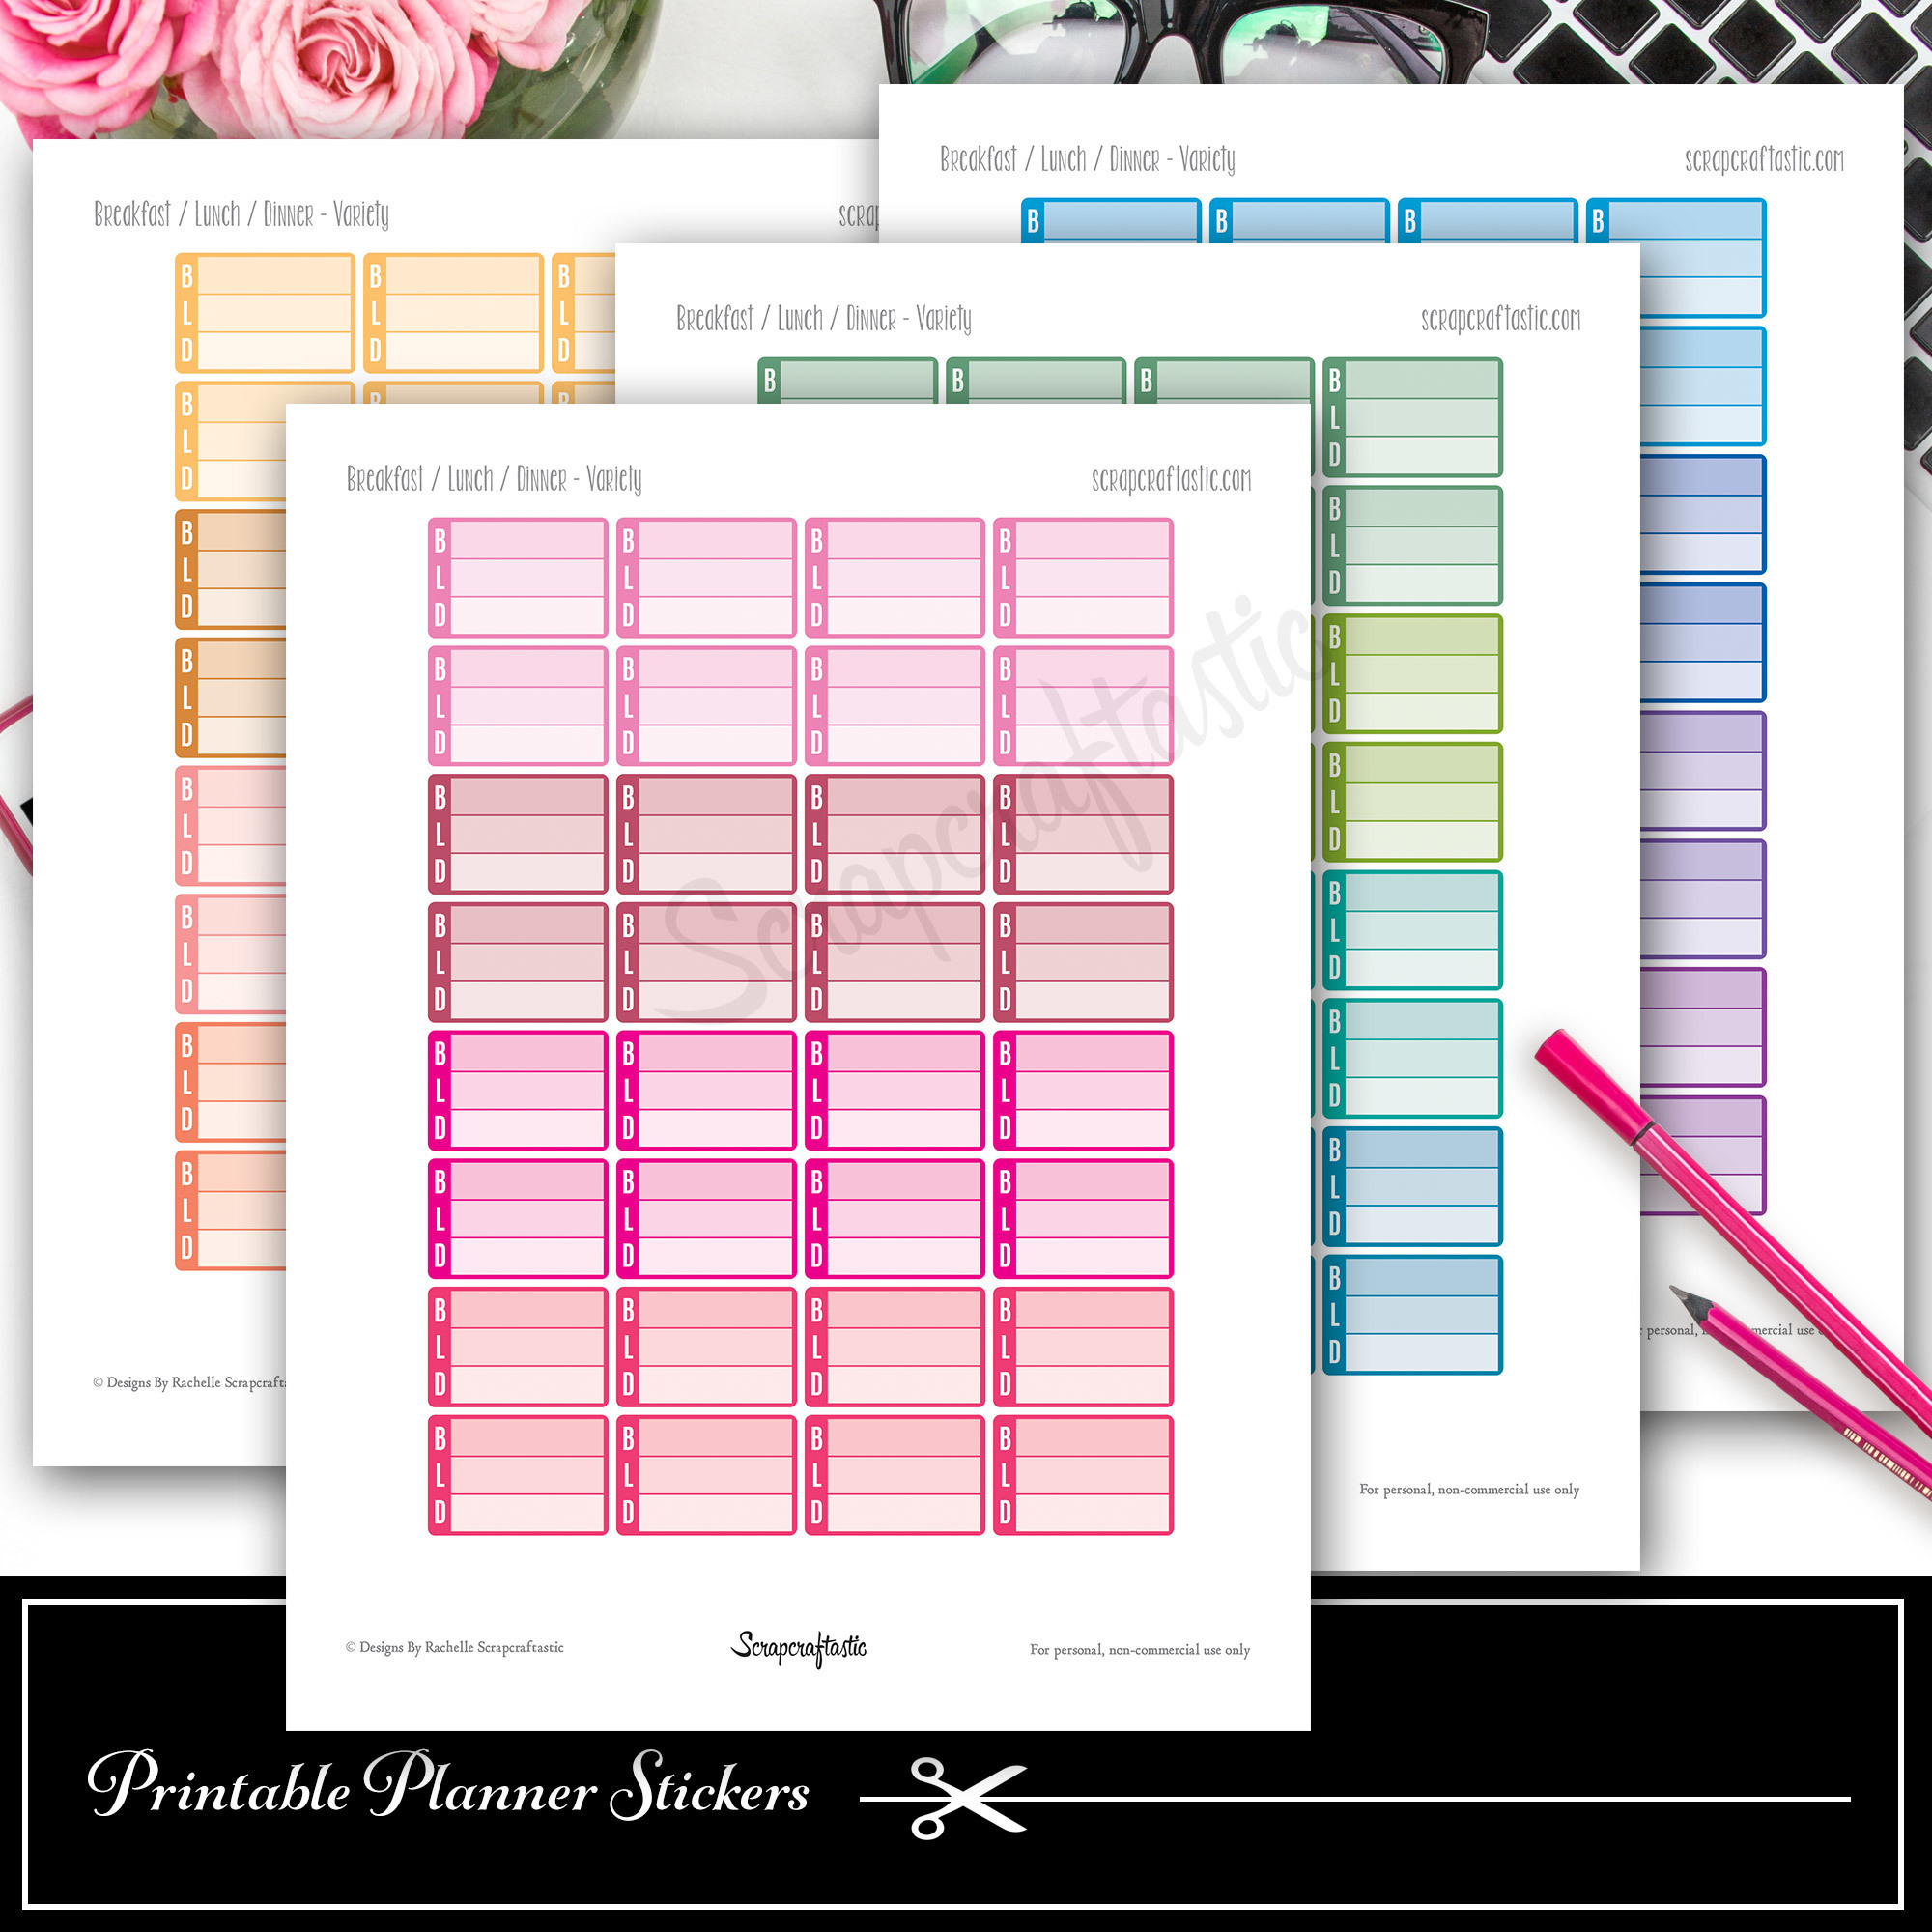 Breakfast, Lunch, Dinner (BLD) Printable Planner Stickers and Silhouette Cut File 03007